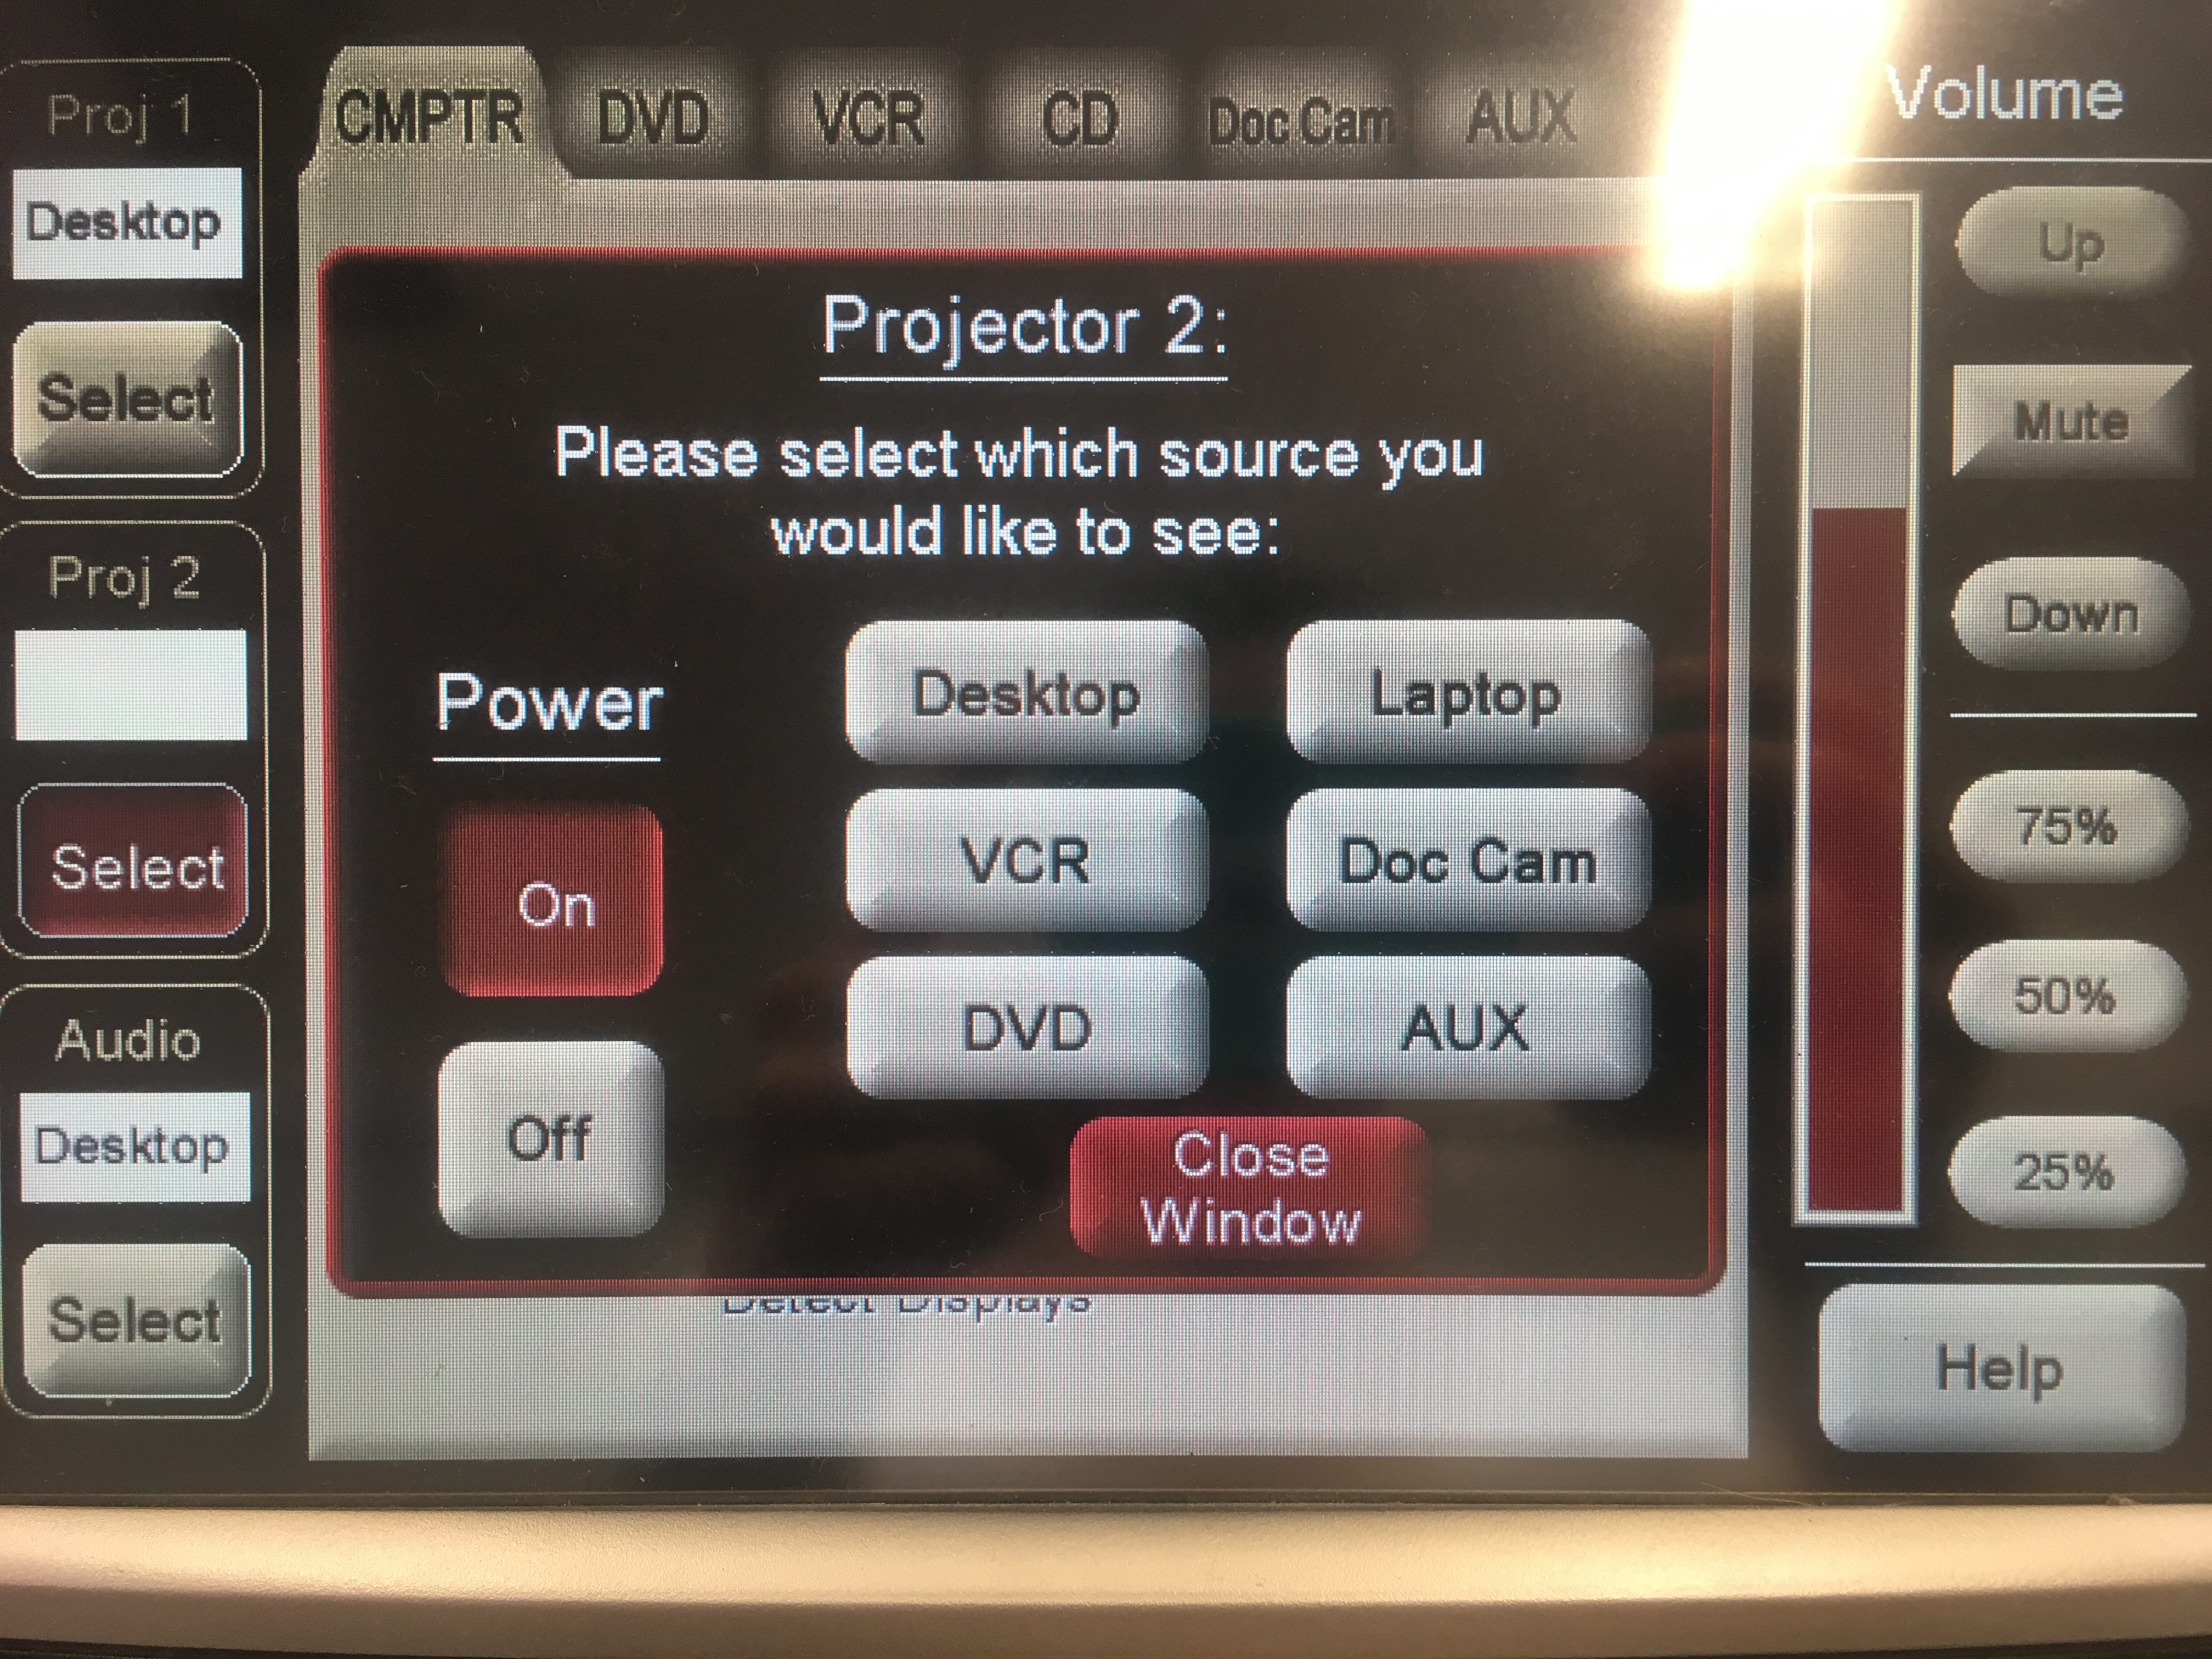 Photo of the crestron control touch panel showing the option to turn projector 2 on